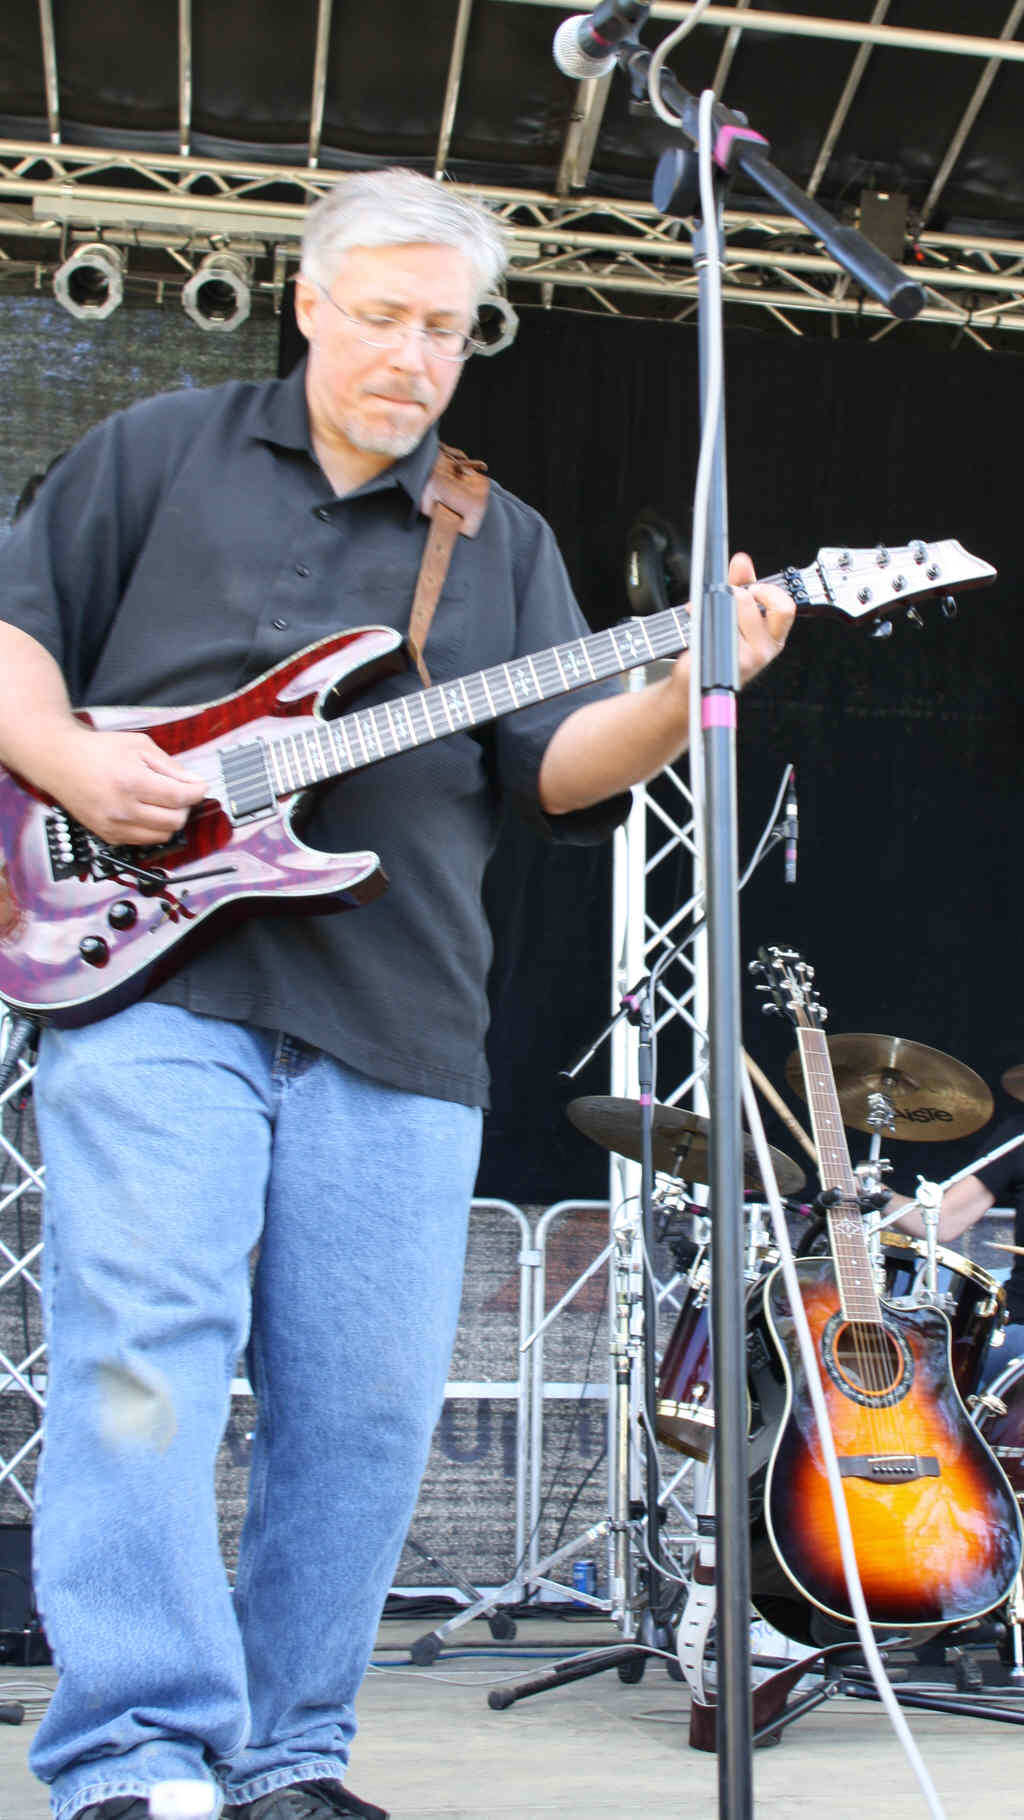 Tom Conklin, a co-founder of BOOM, local radio personality, and guitarist with The Matchstick Architects at BerkshireStock 2012 (submitted photo).